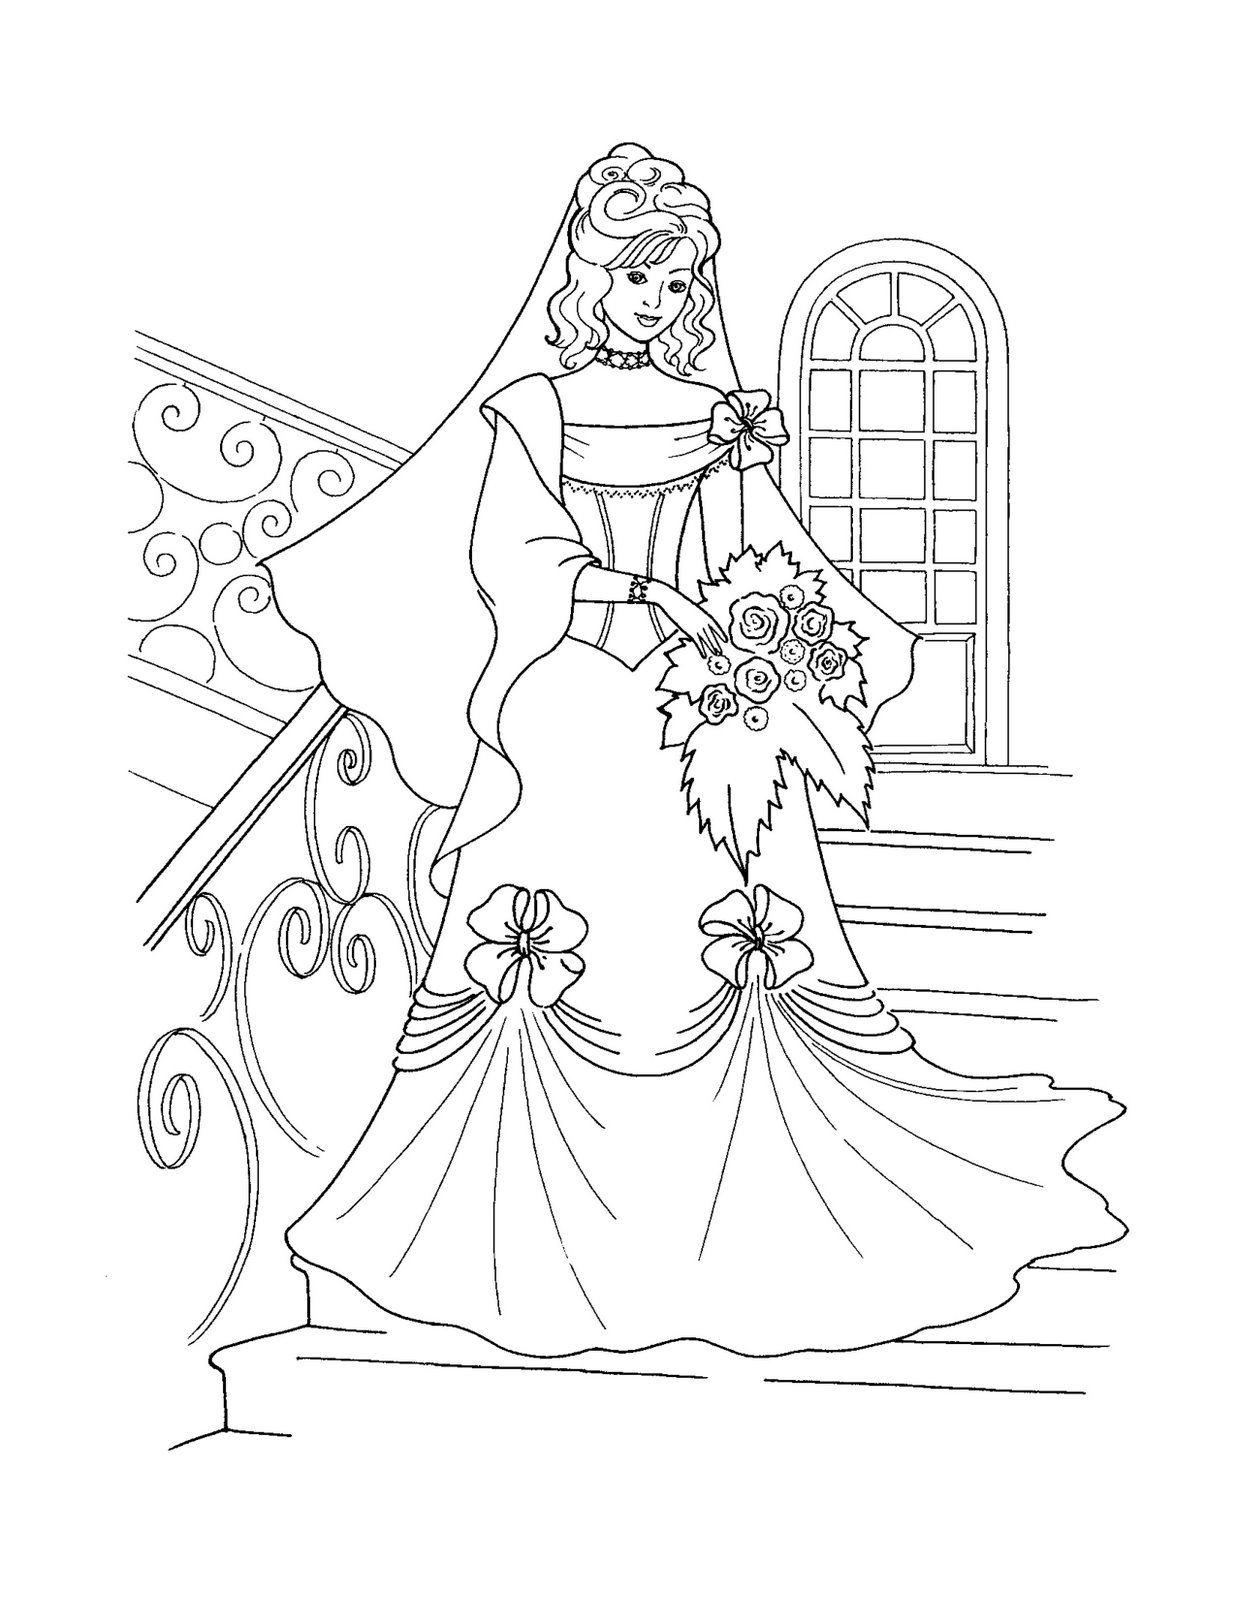 images of princess coloring pages princess aurora coloring pages learn to coloring princess of pages images coloring